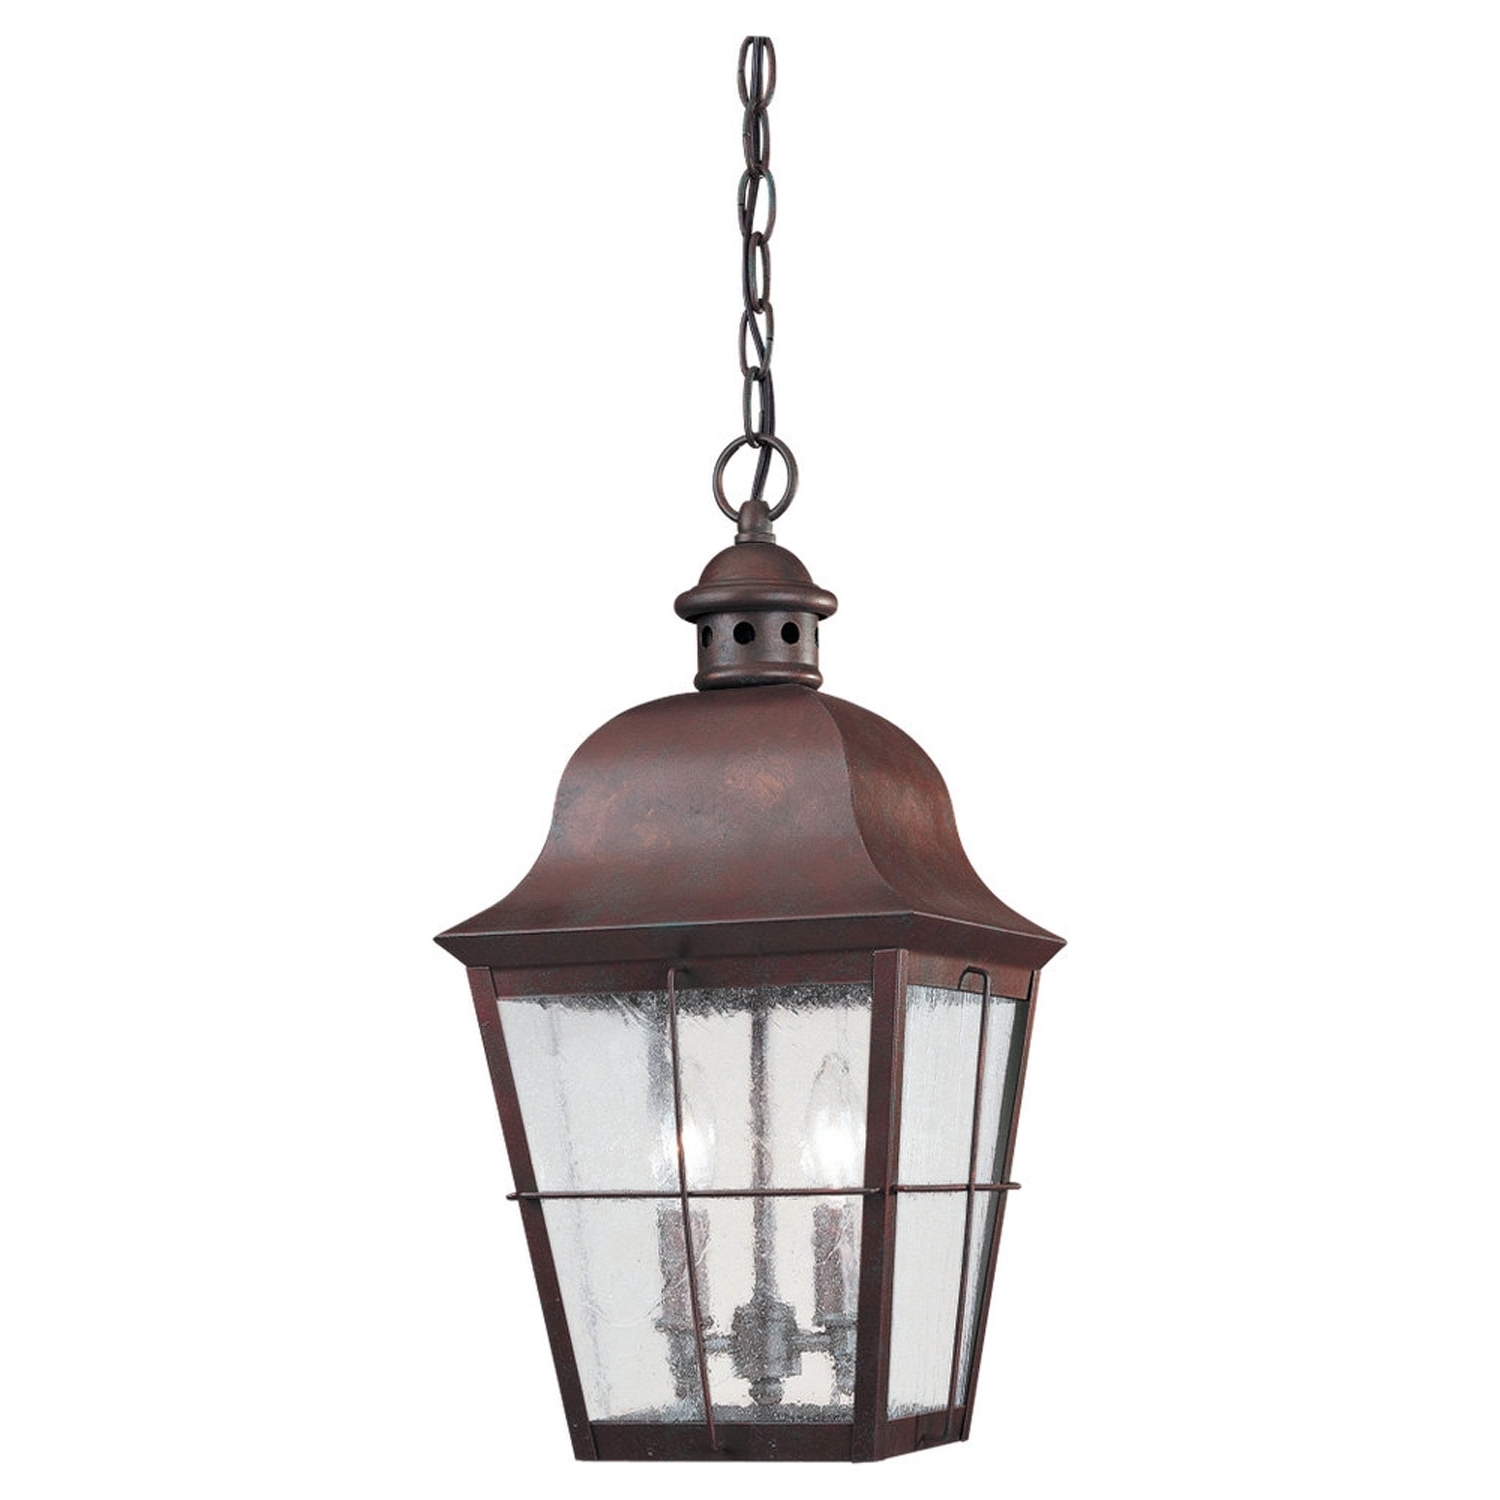 Famous Sea Gull Lighting Colonial Copper Outdoor Hanging Lantern 6062 44 Regarding Led Outdoor Hanging Lanterns (View 5 of 20)